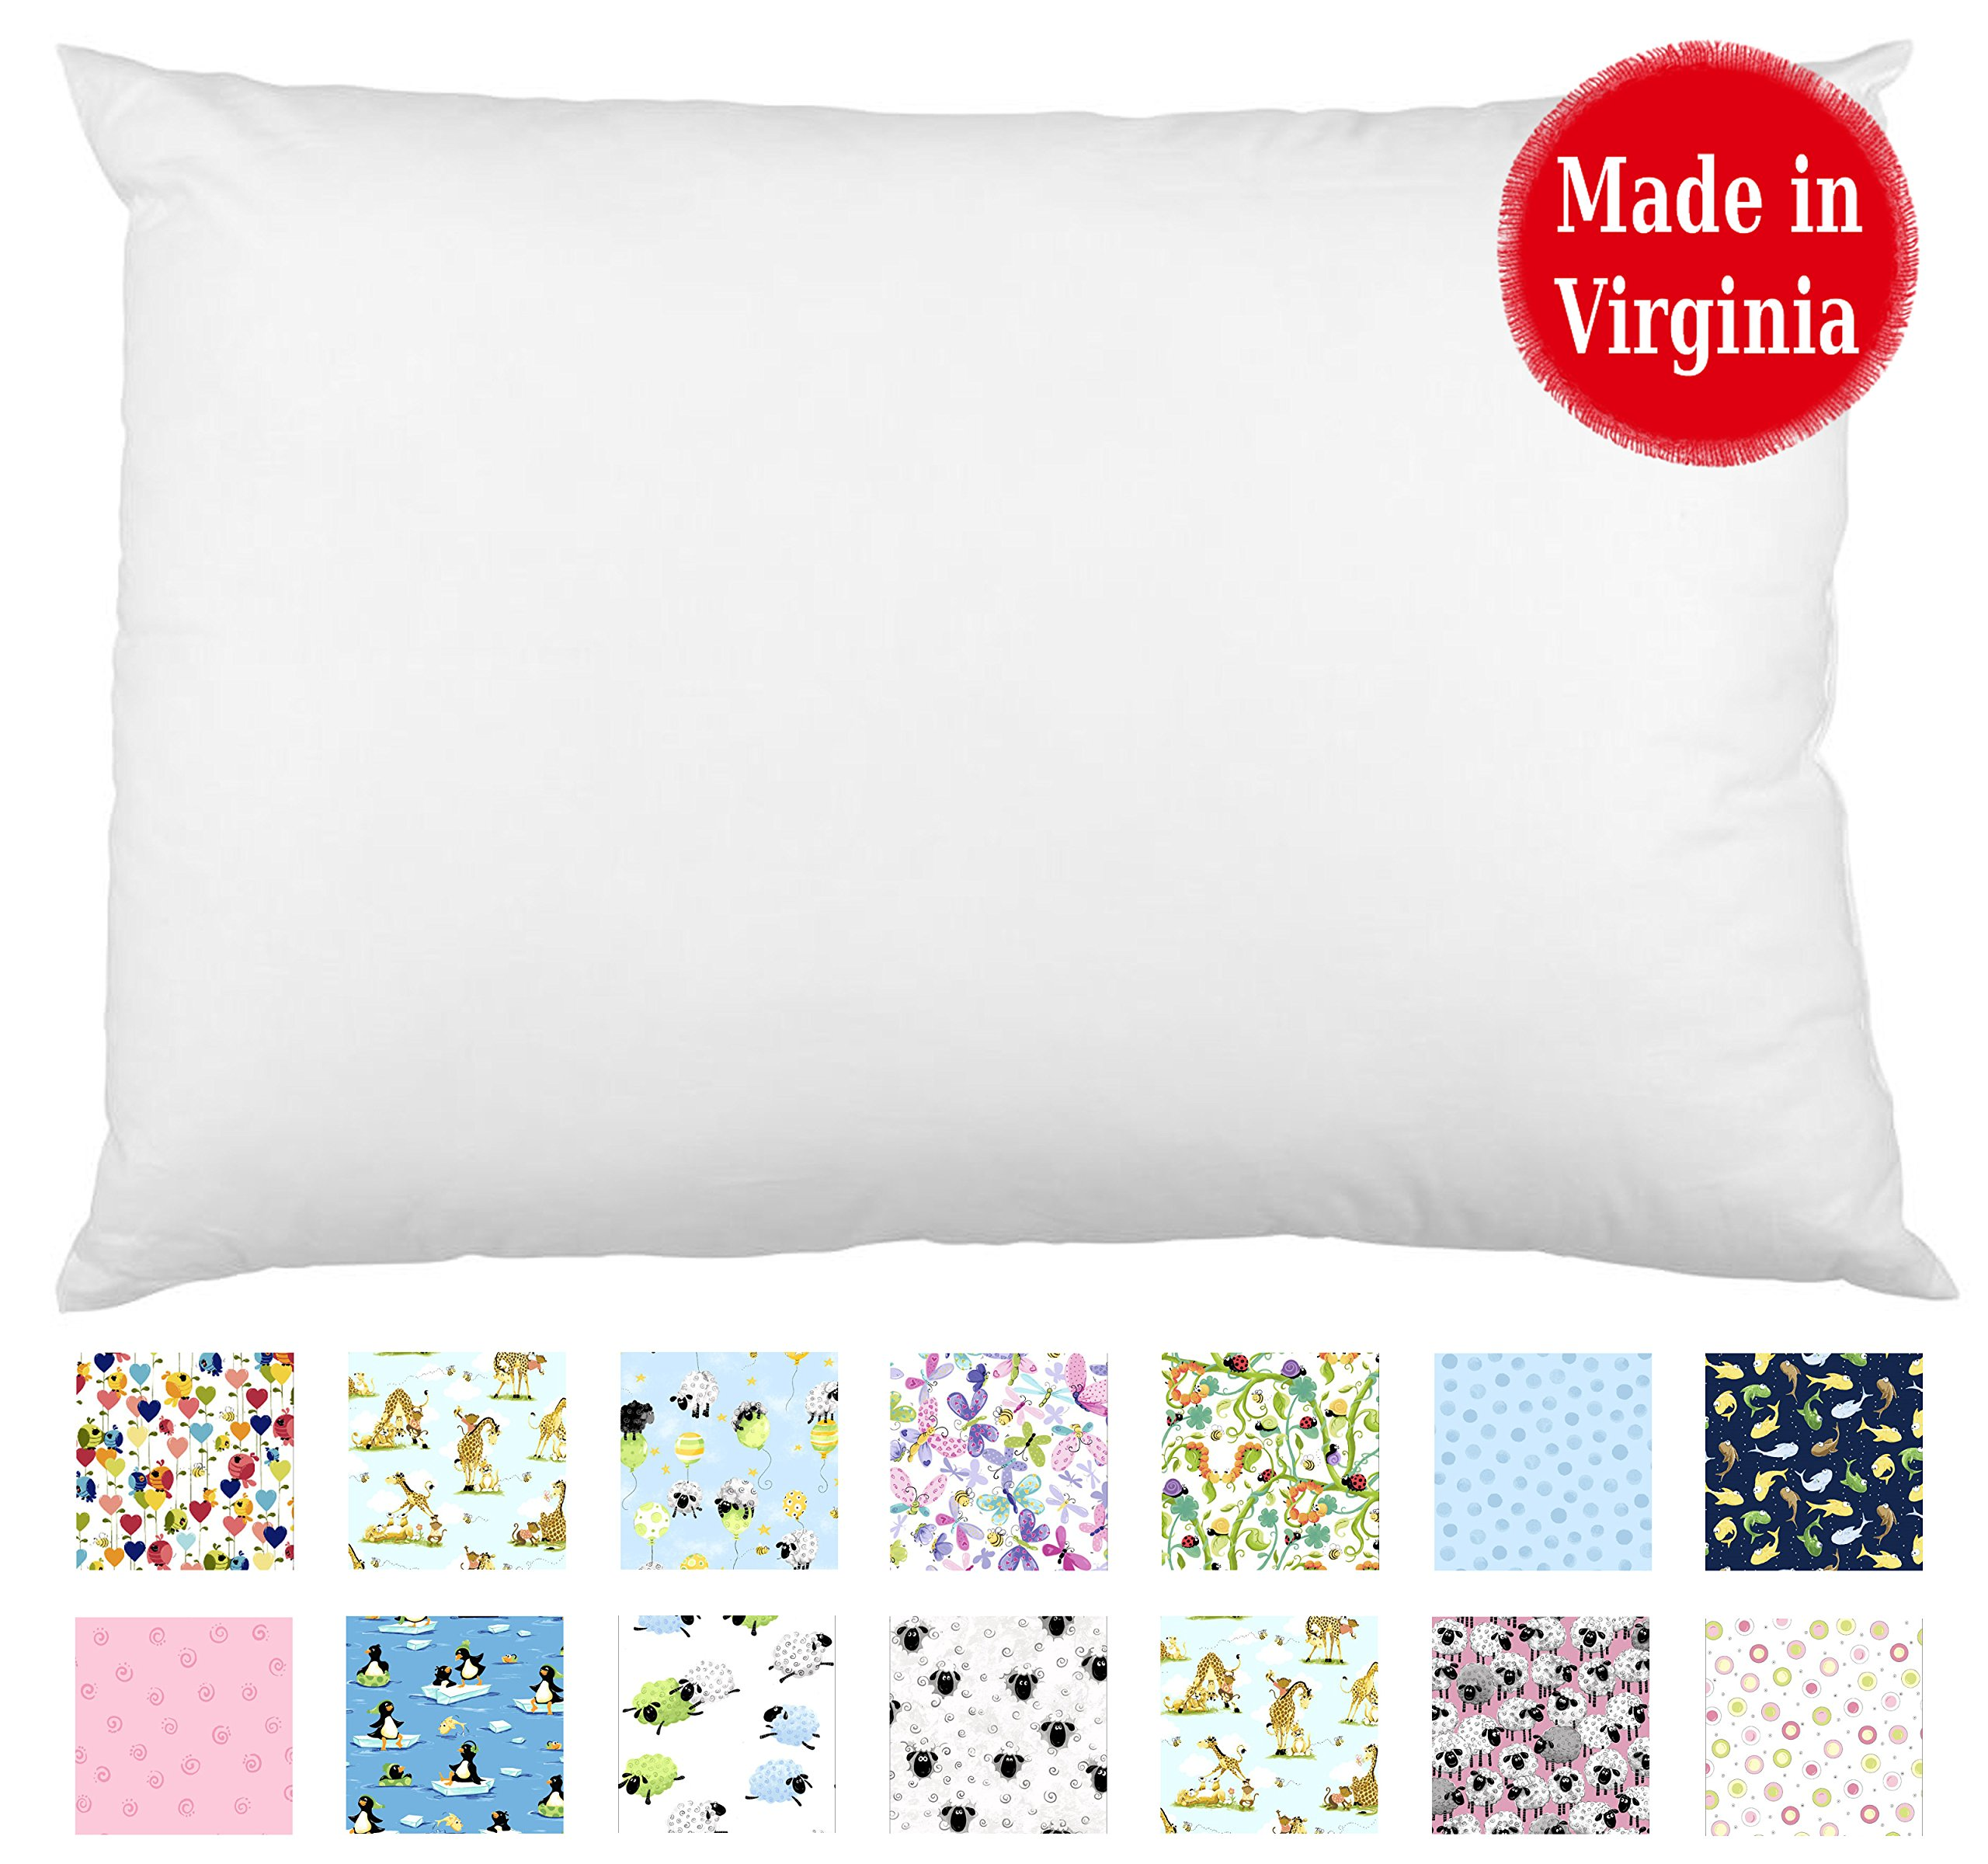 Toddler Pillow (13'' x 18'') - Hypoallergenic - Machine Washable - Double Stitched for Extra Strength - Made in Virginia by A Little Pillow Company (White)